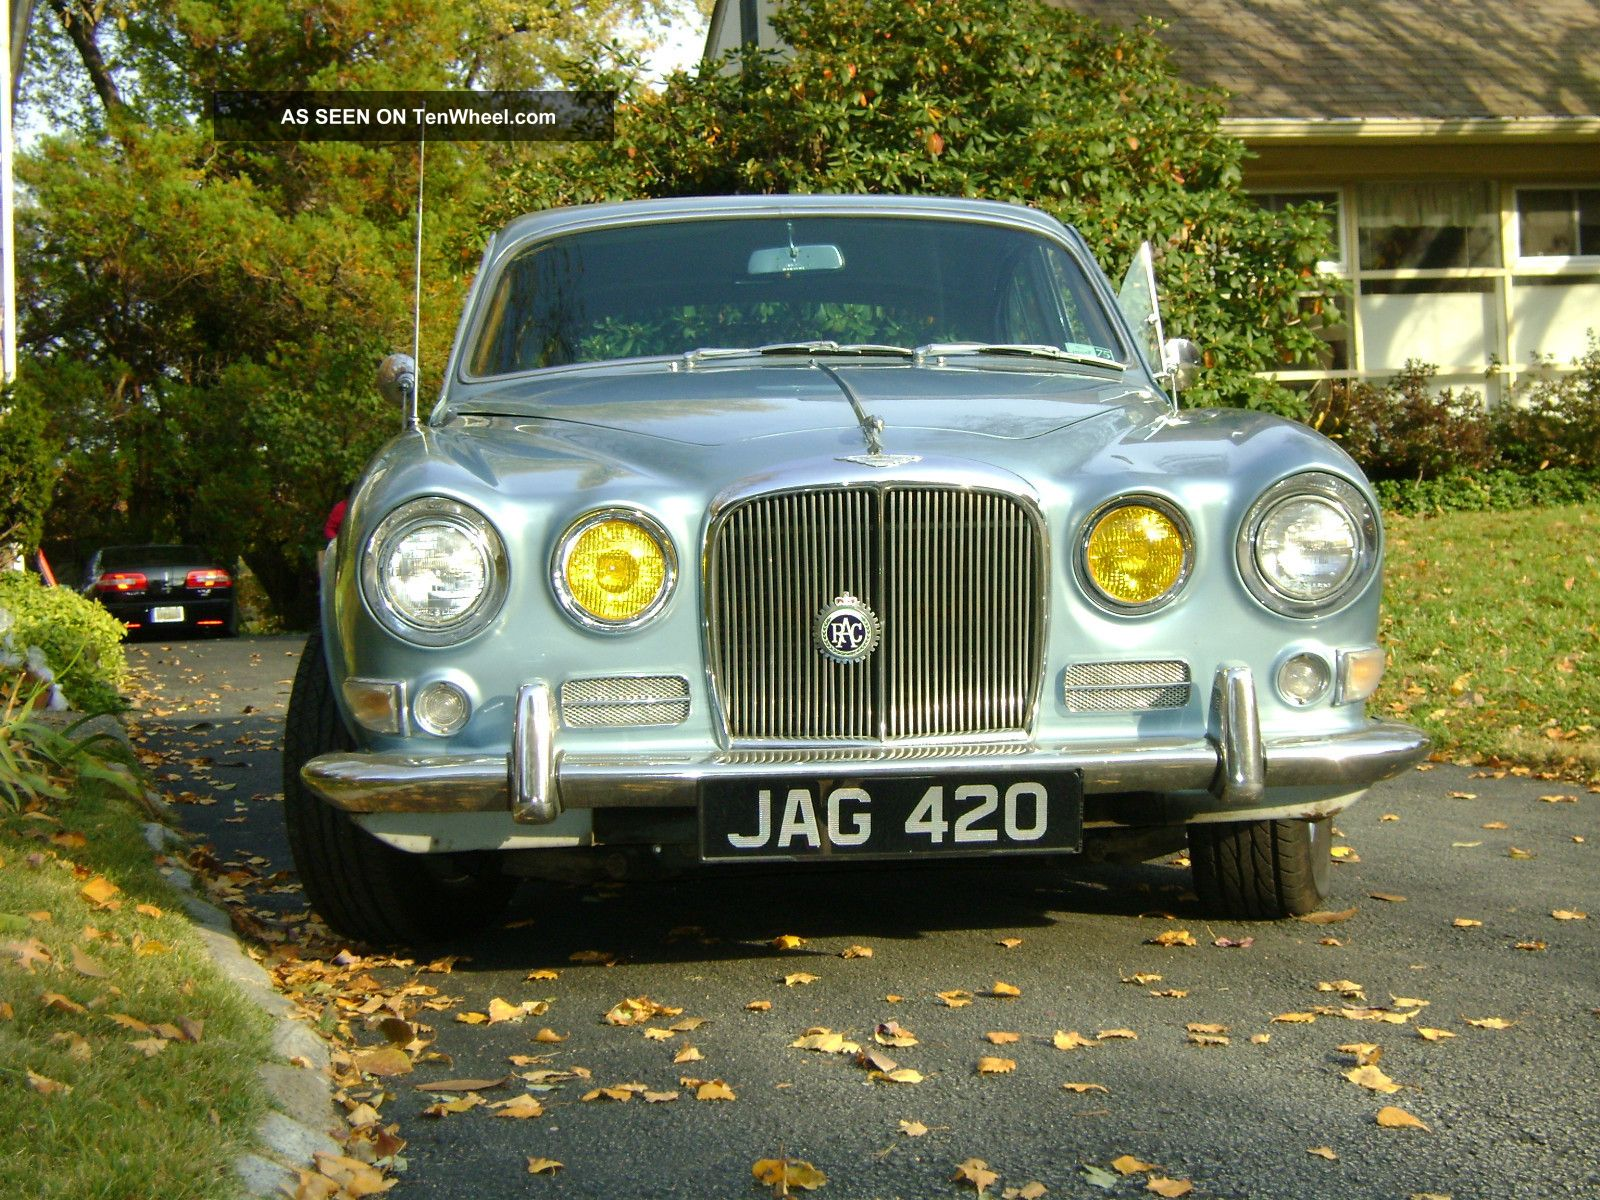 Classic 1967 Juguar Saloon Model 420 Last Of The Baby Jaguars Other photo